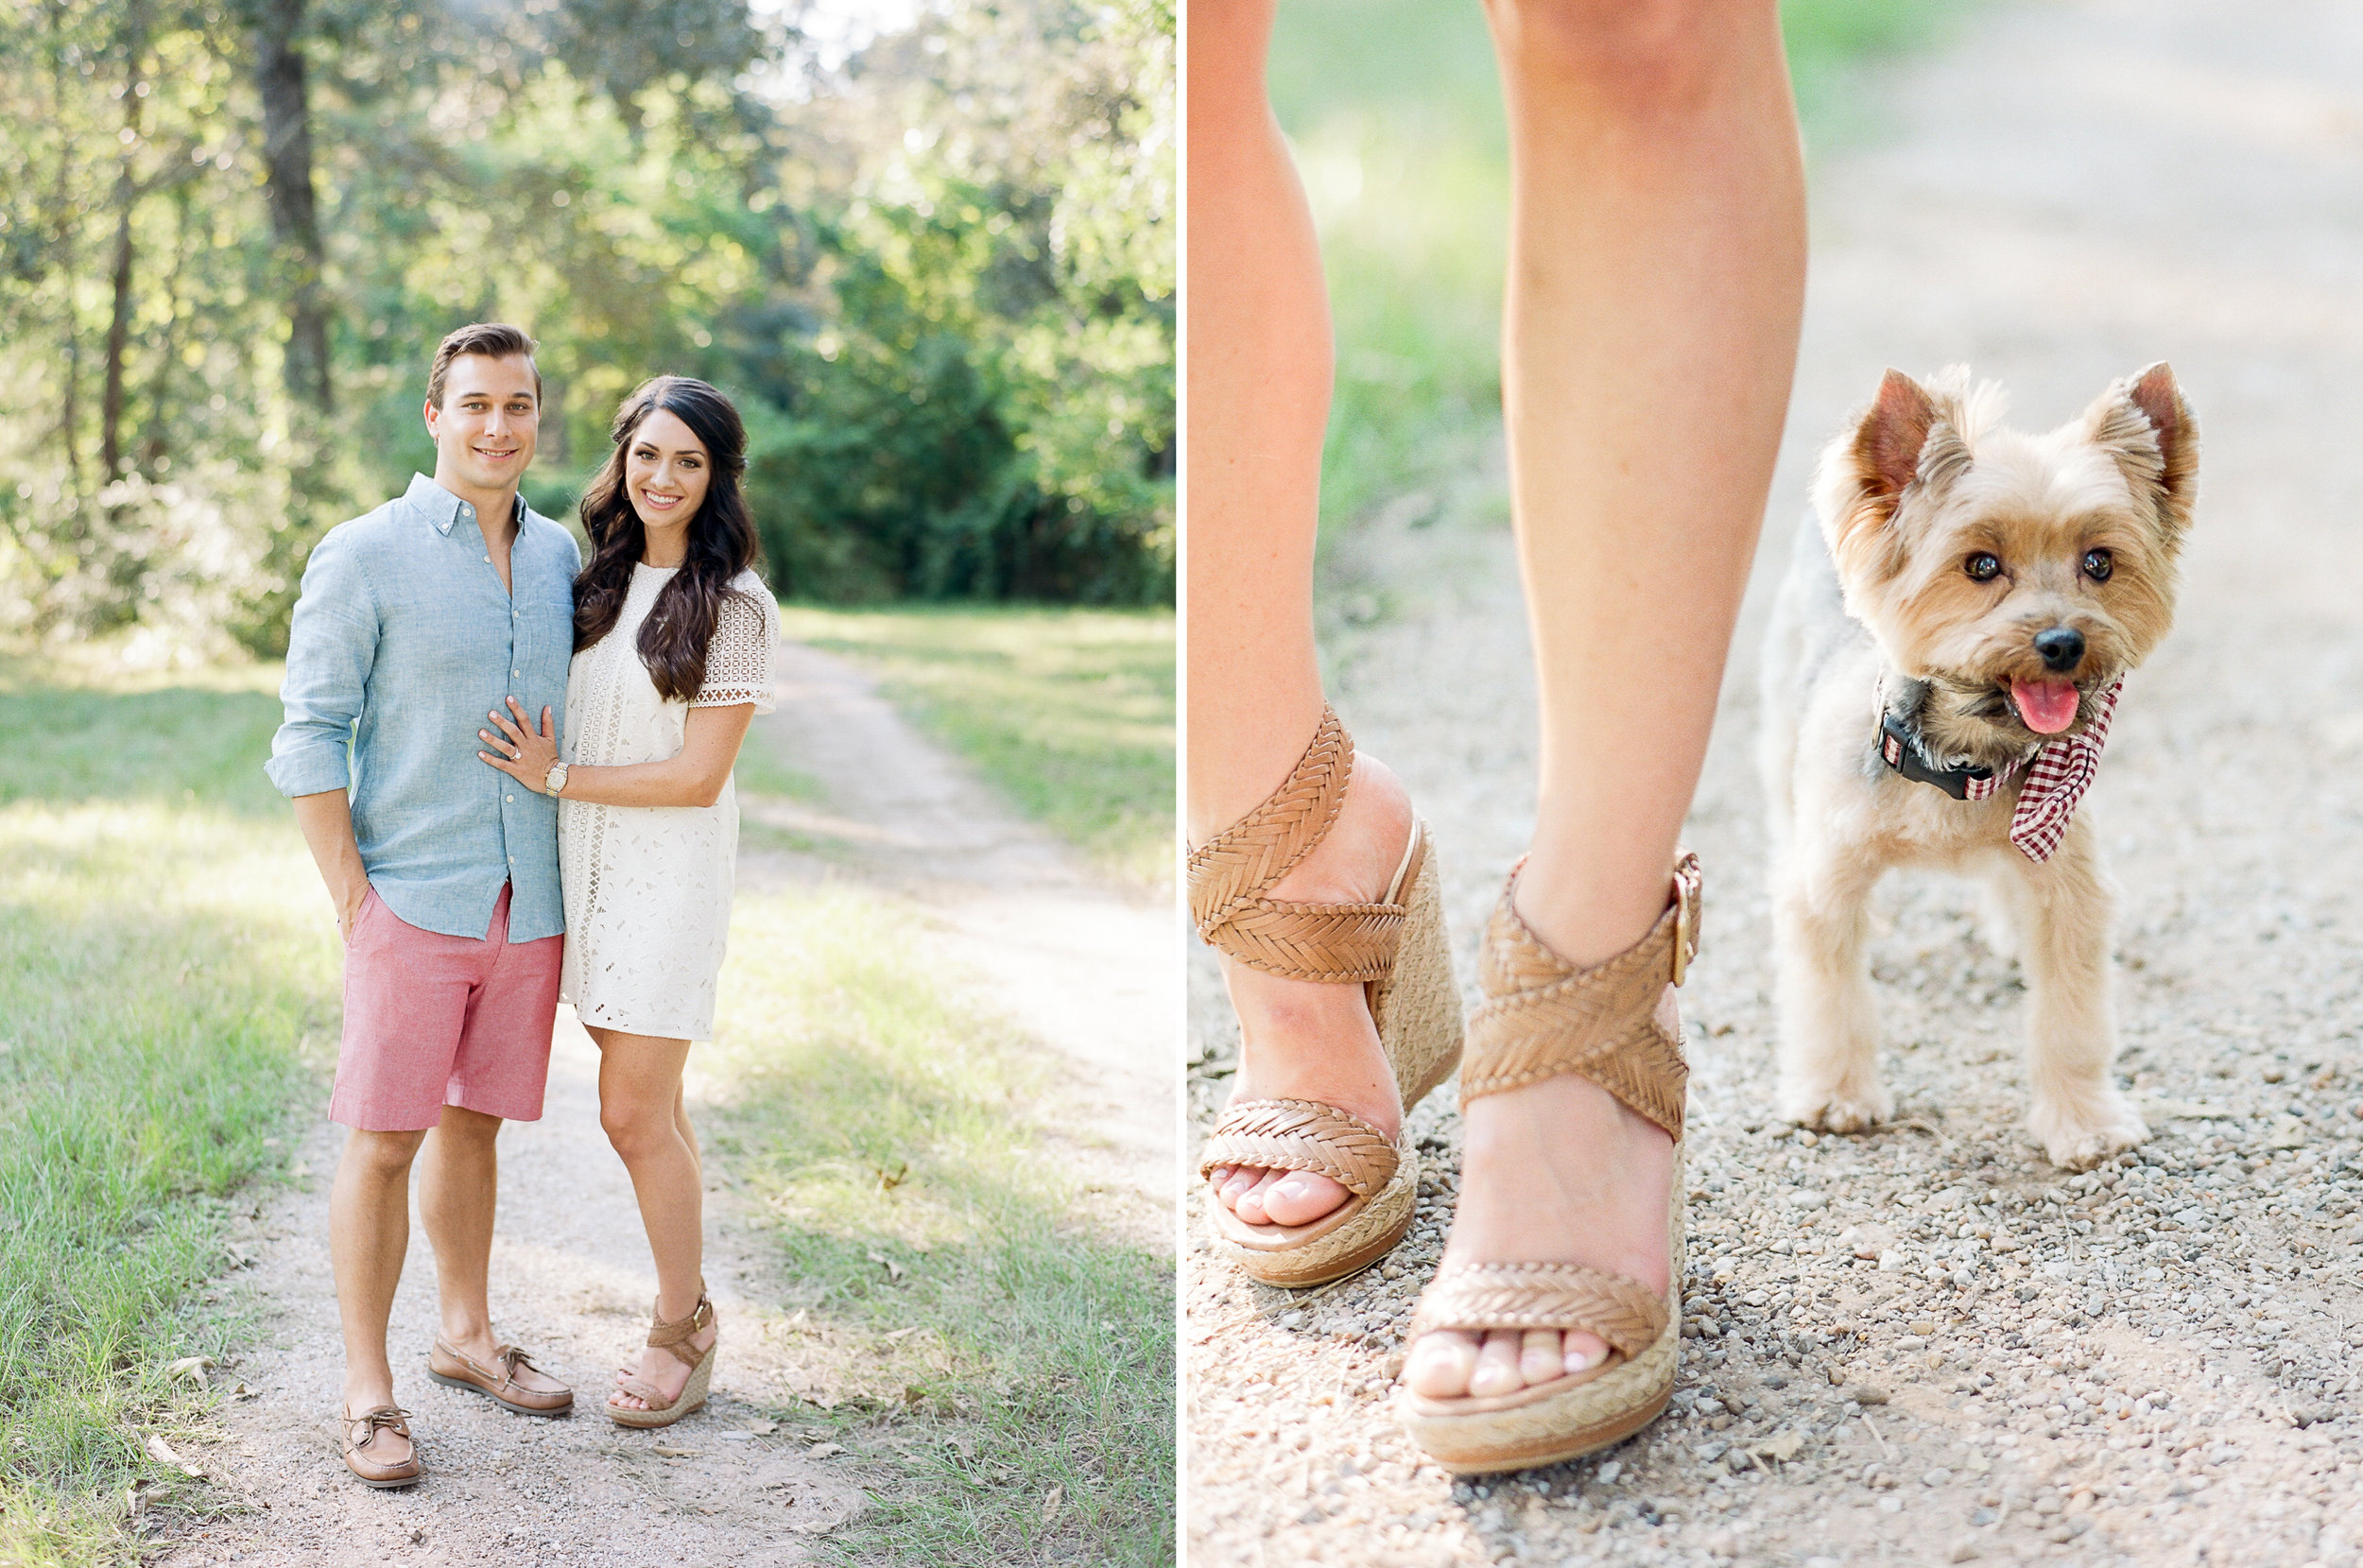 houston-wedding-photographer-engagements-engagement-session-houston-portrait-photographer-film-austin-wedding-photography-107.jpg